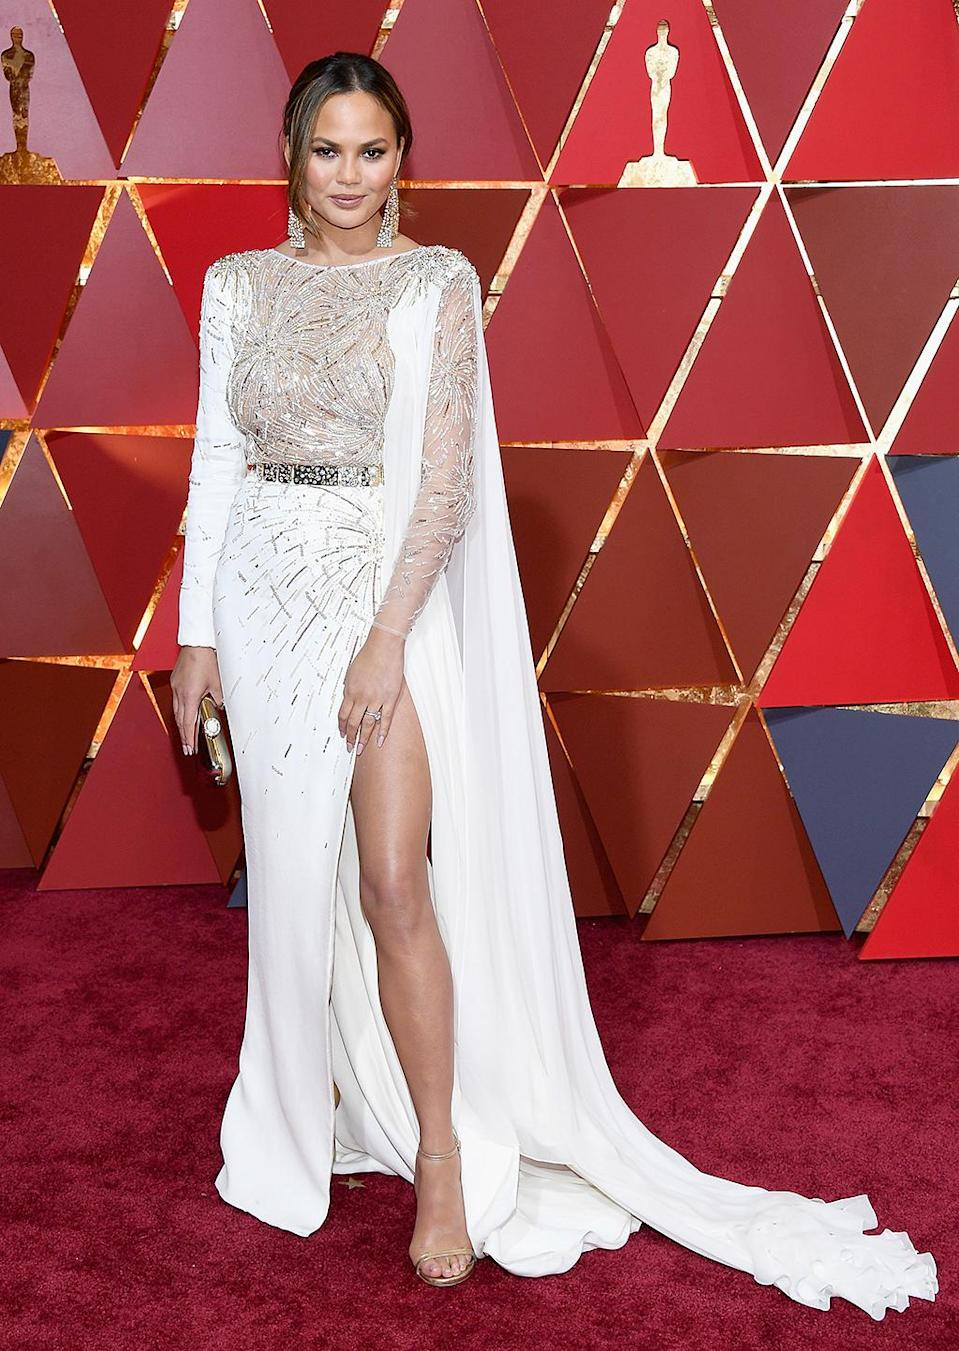 <p>Chrissy Teigen attends the 89th Annual Academy Awards at Hollywood & Highland Center on February 26, 2017 in Hollywood, California. (Photo by Kevork Djansezian/Getty Images) </p>